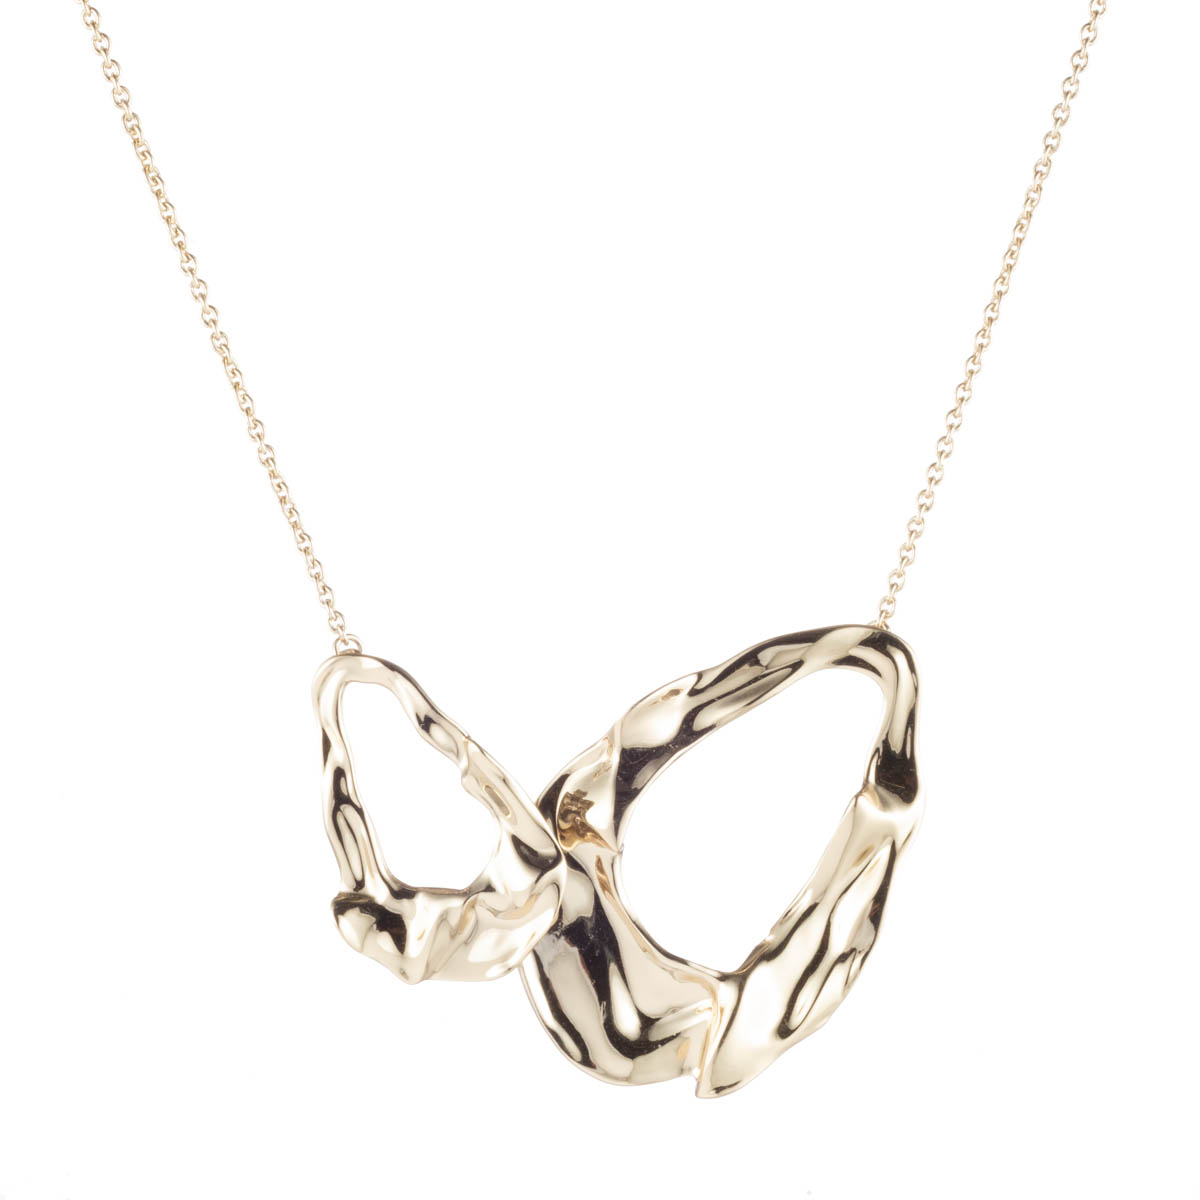 Alexis Bittar Crumpled Gold Link Necklace by Alexis Bittar